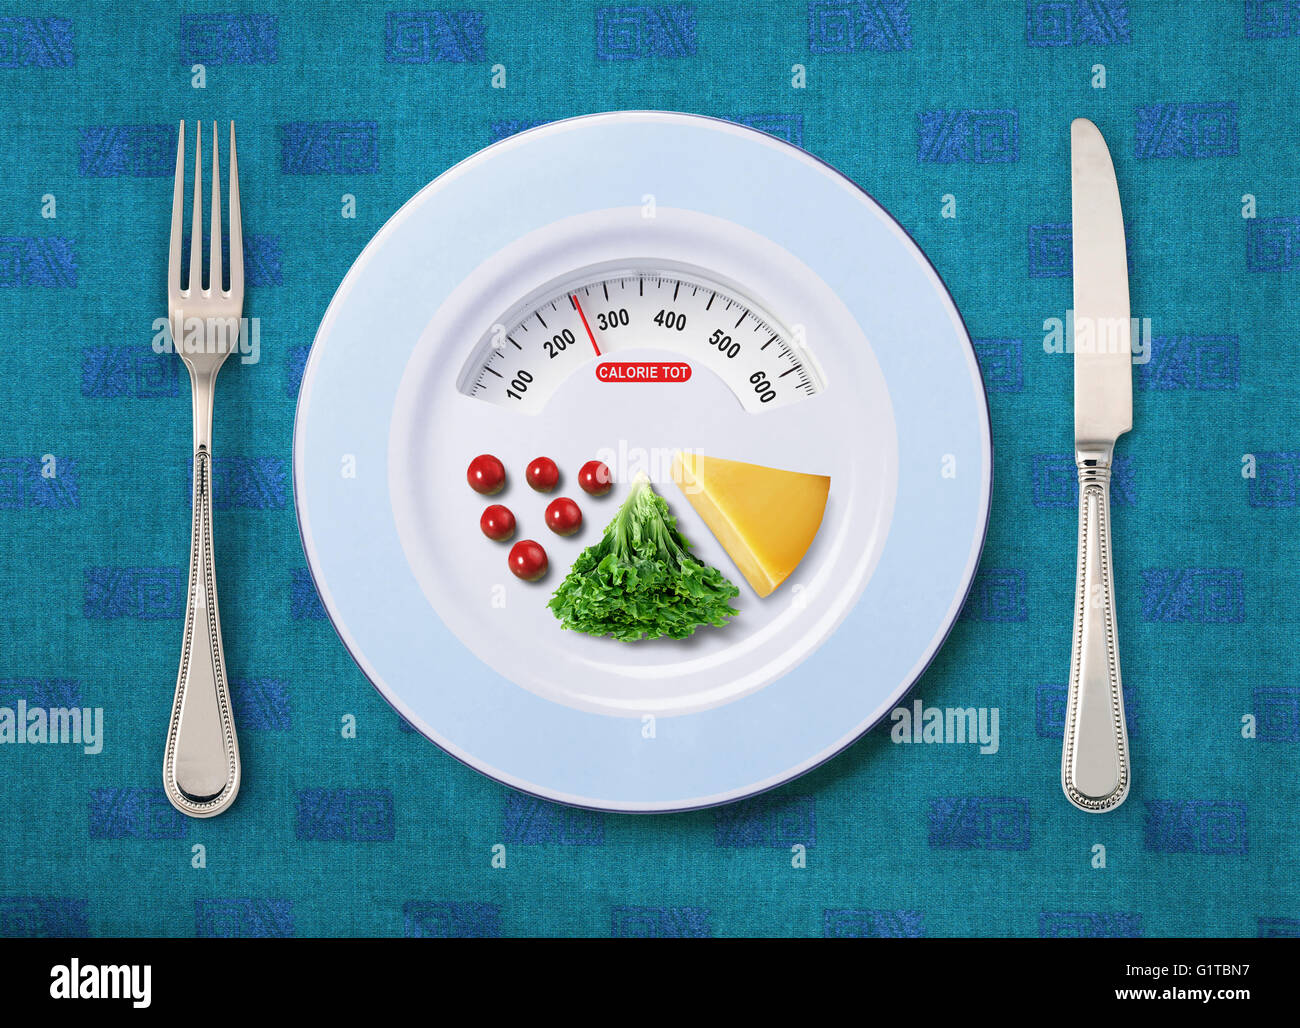 view of calorie tot in food that on white plate - Stock Image